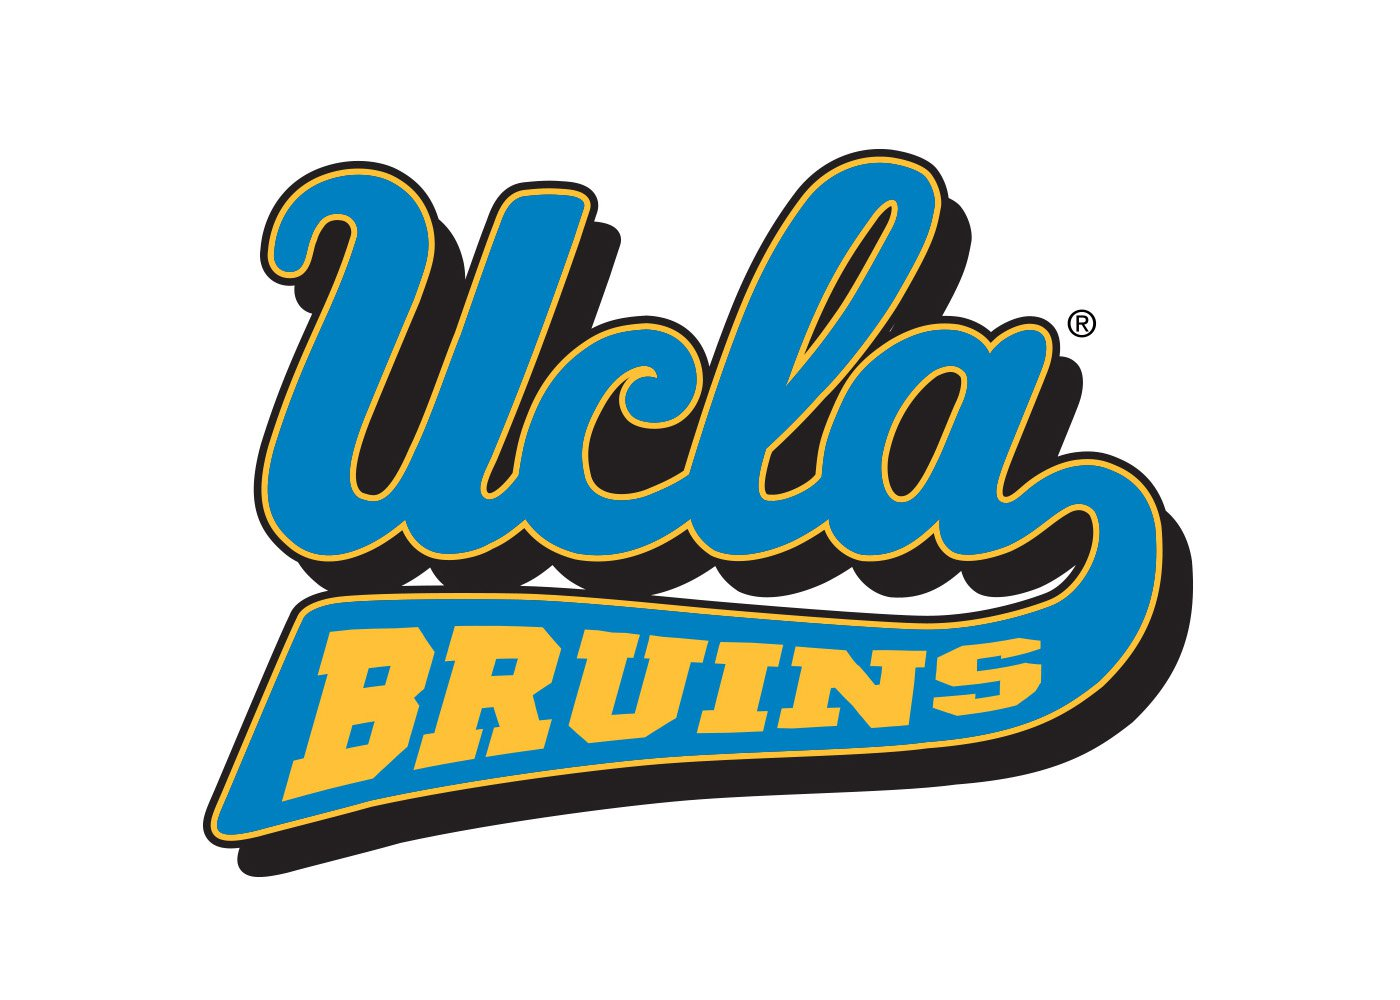 ucla logo coloring pages - photo#14